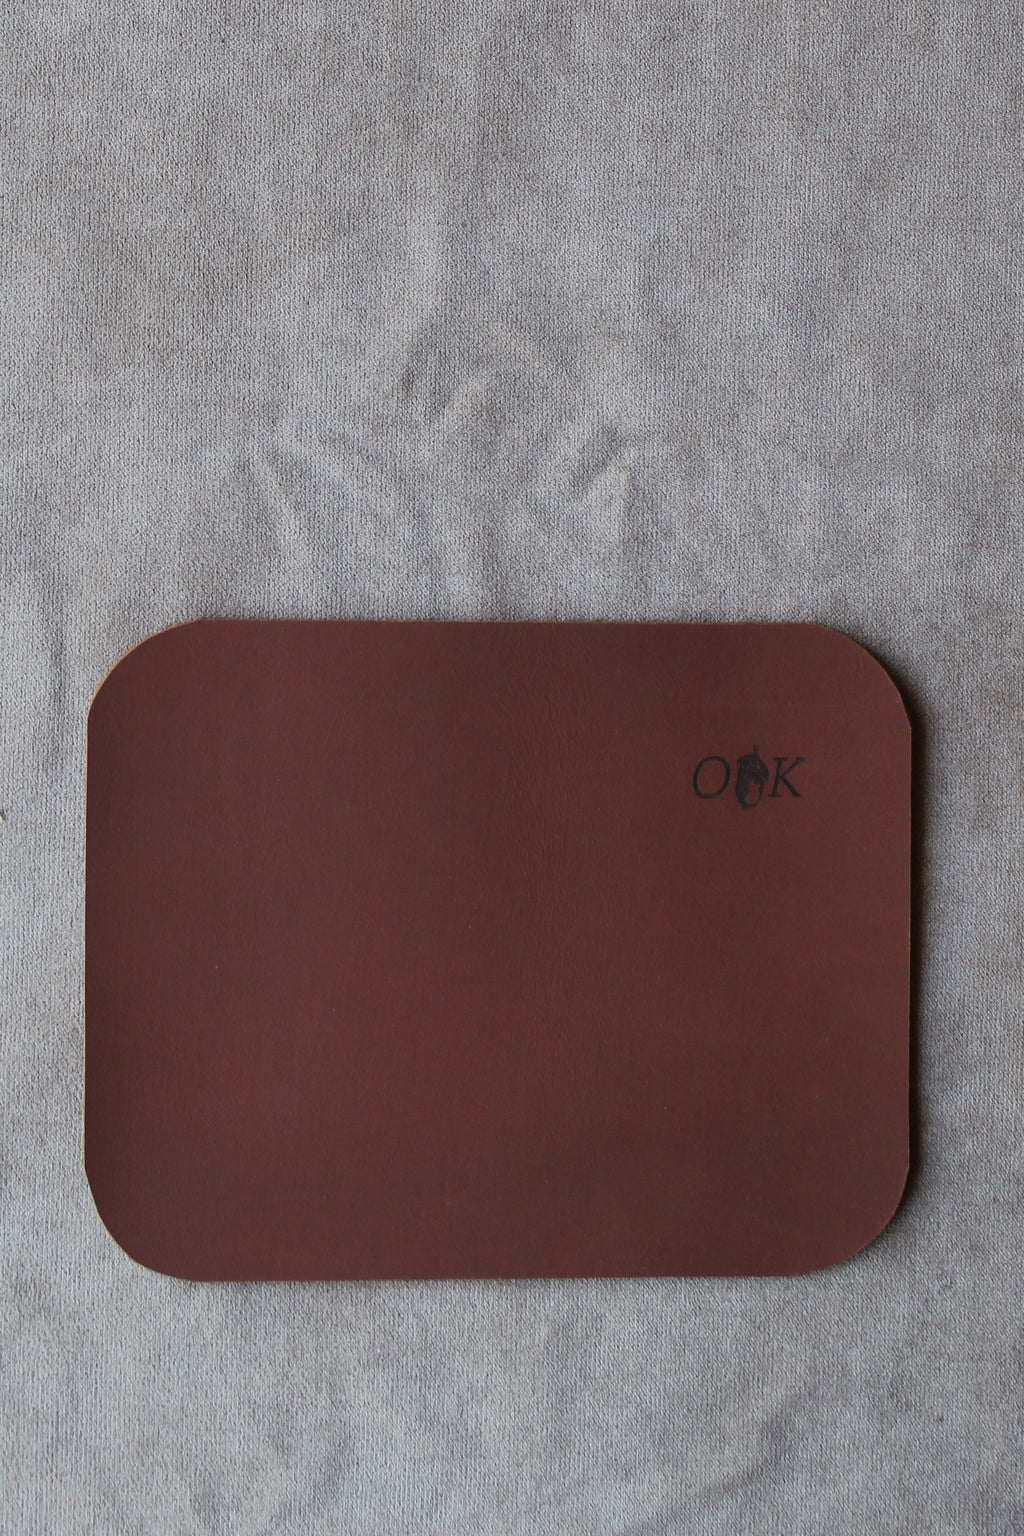 photo of the leather mouse pad